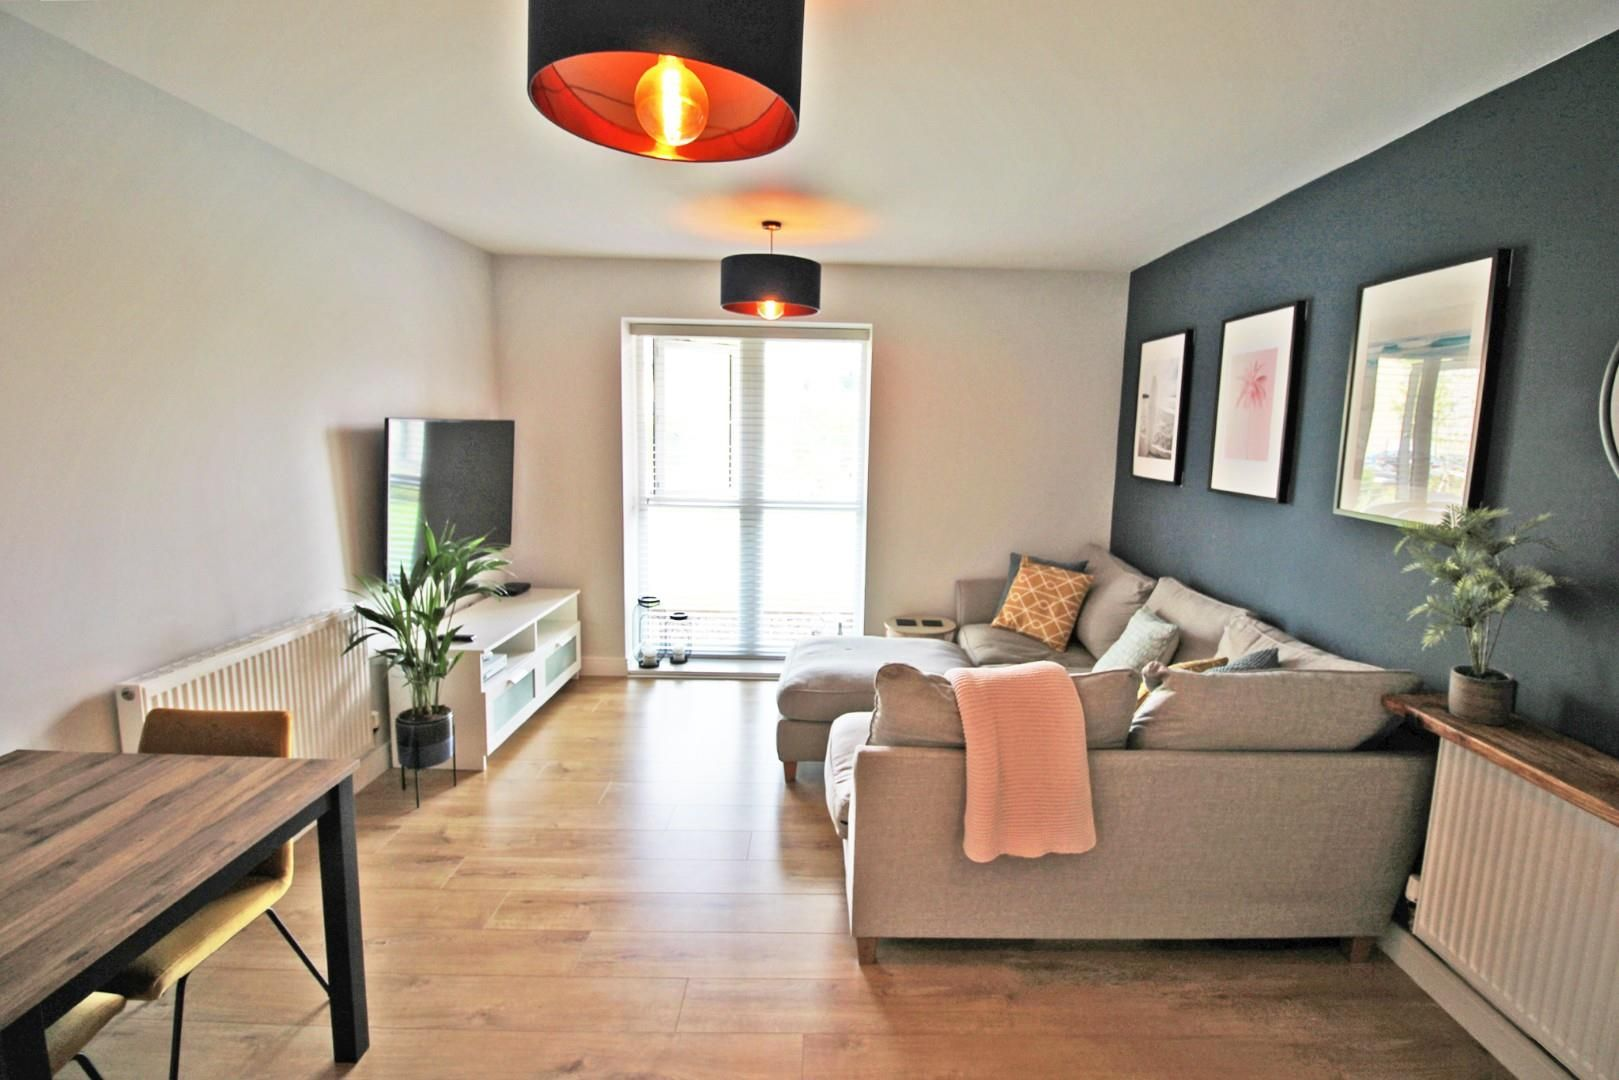 2 bed apartment for sale 1